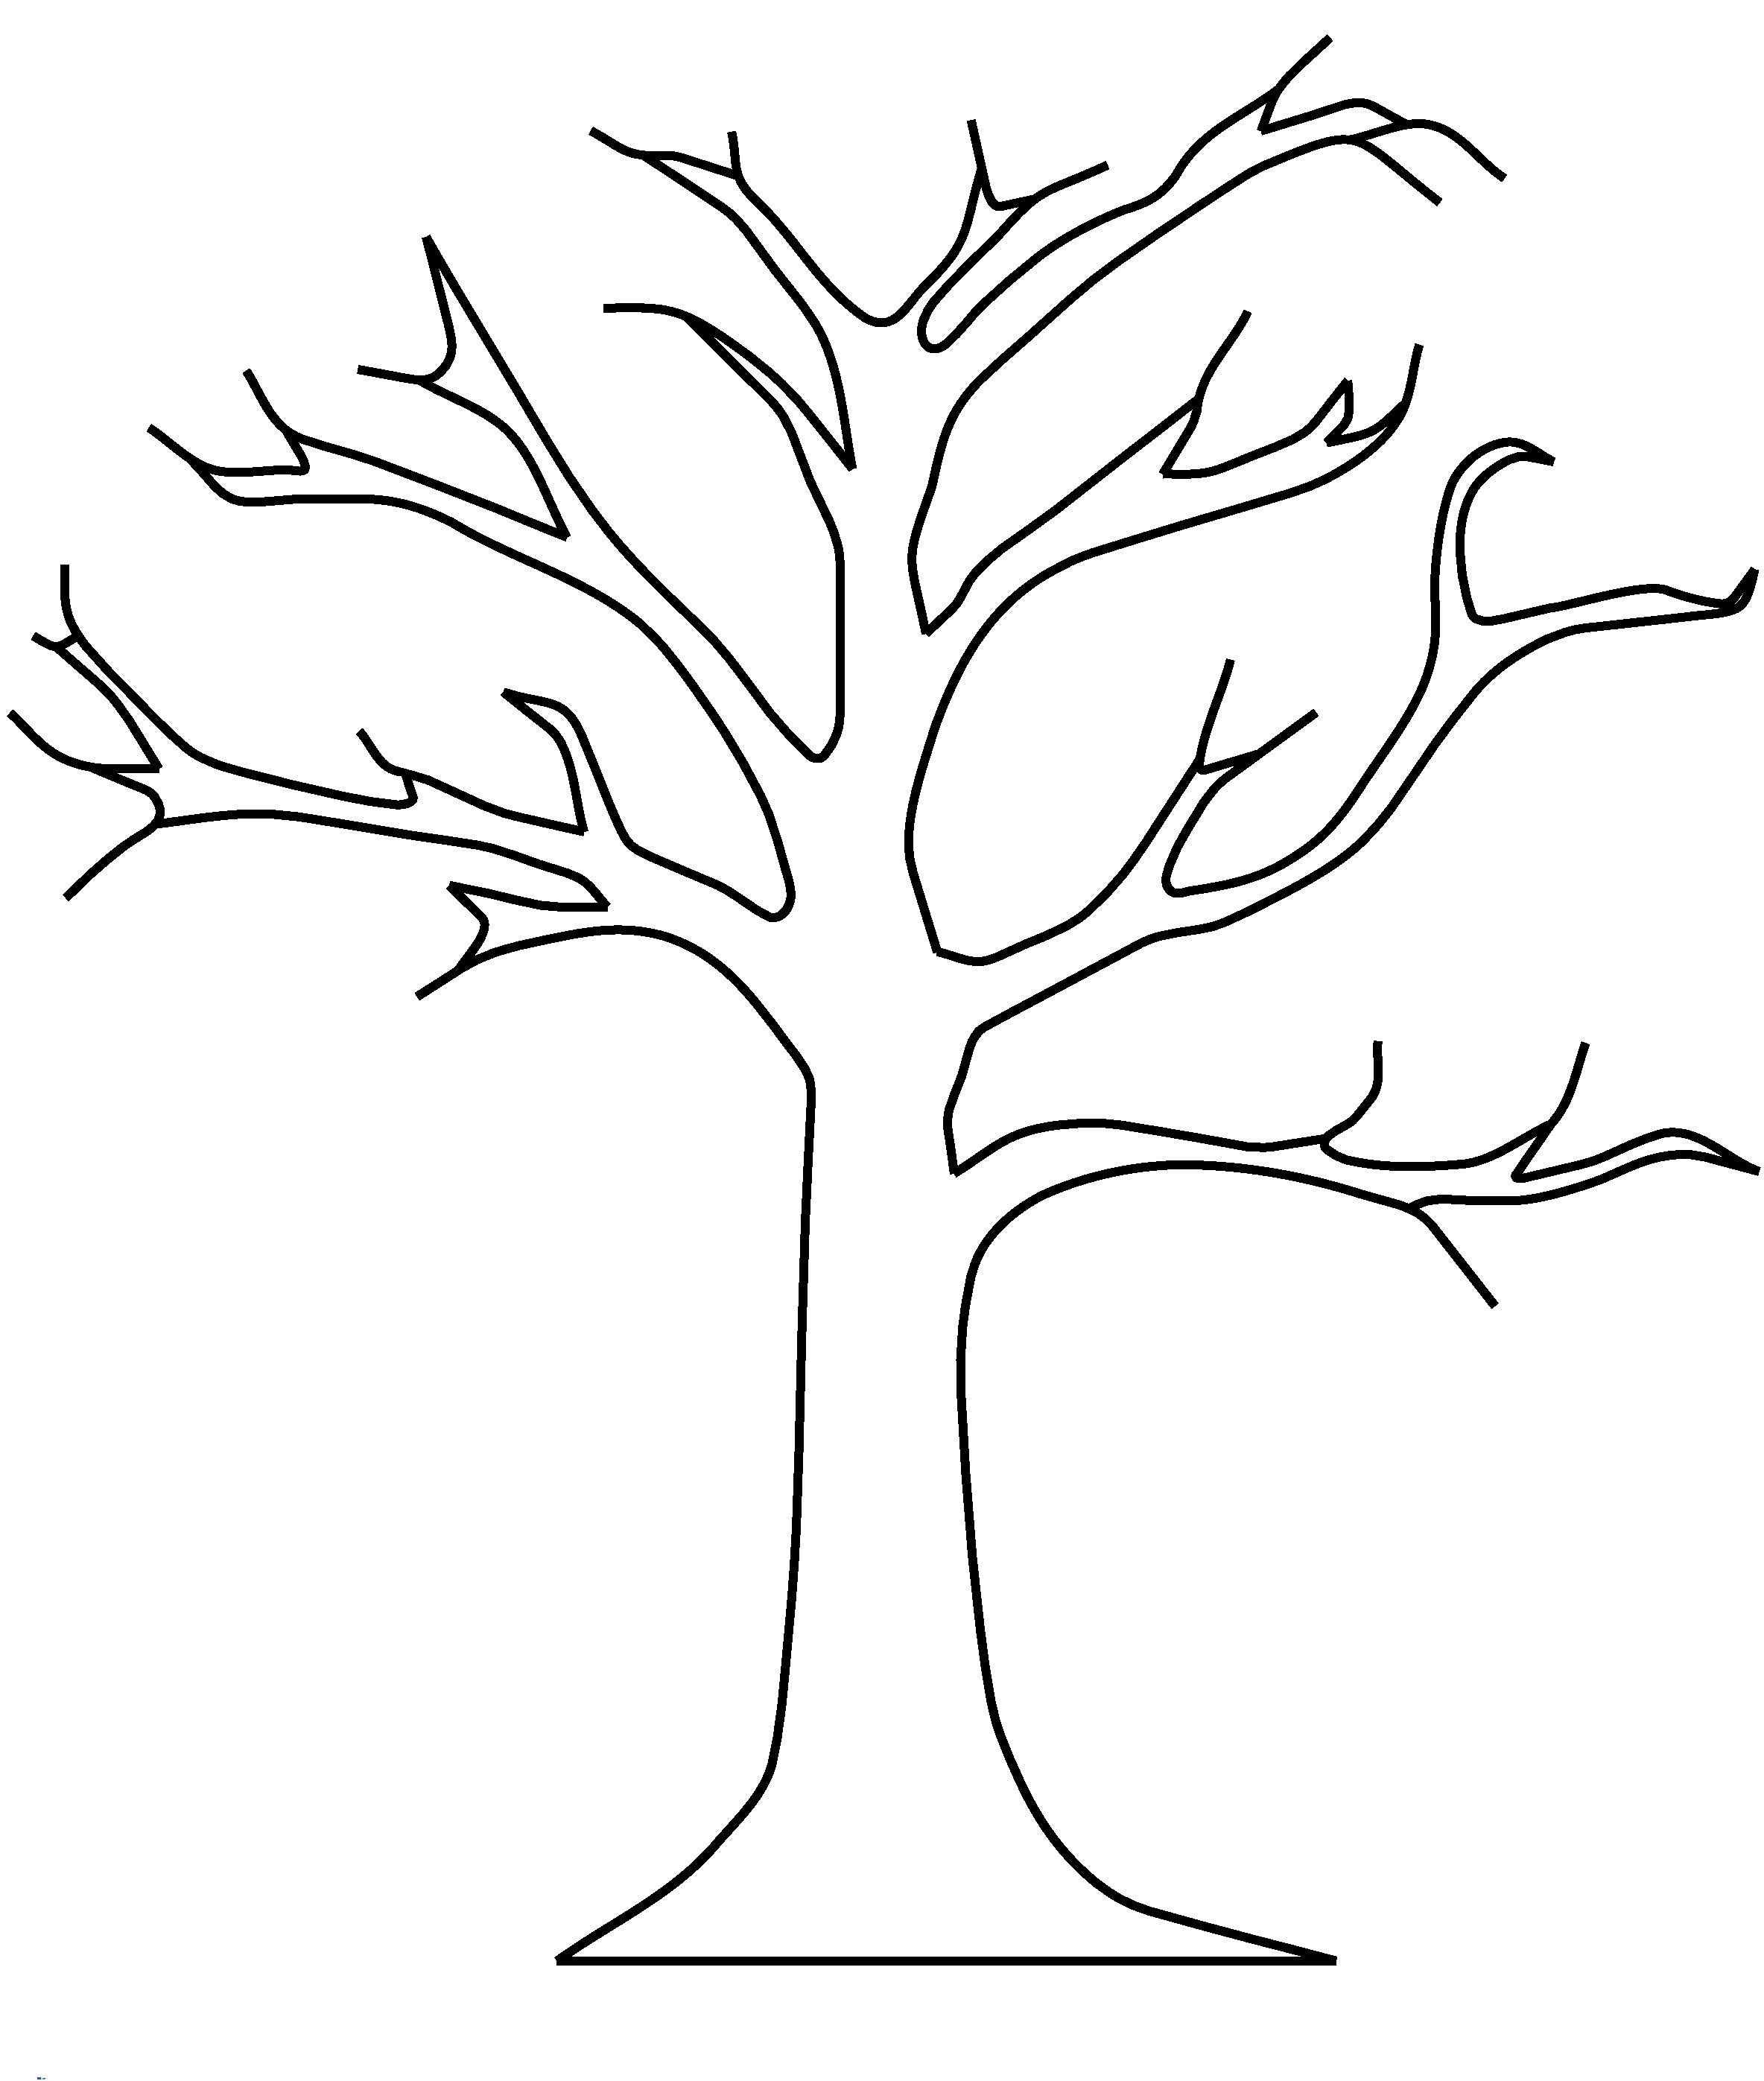 photograph relating to Tree Template Printable named Printable Tree Templates space